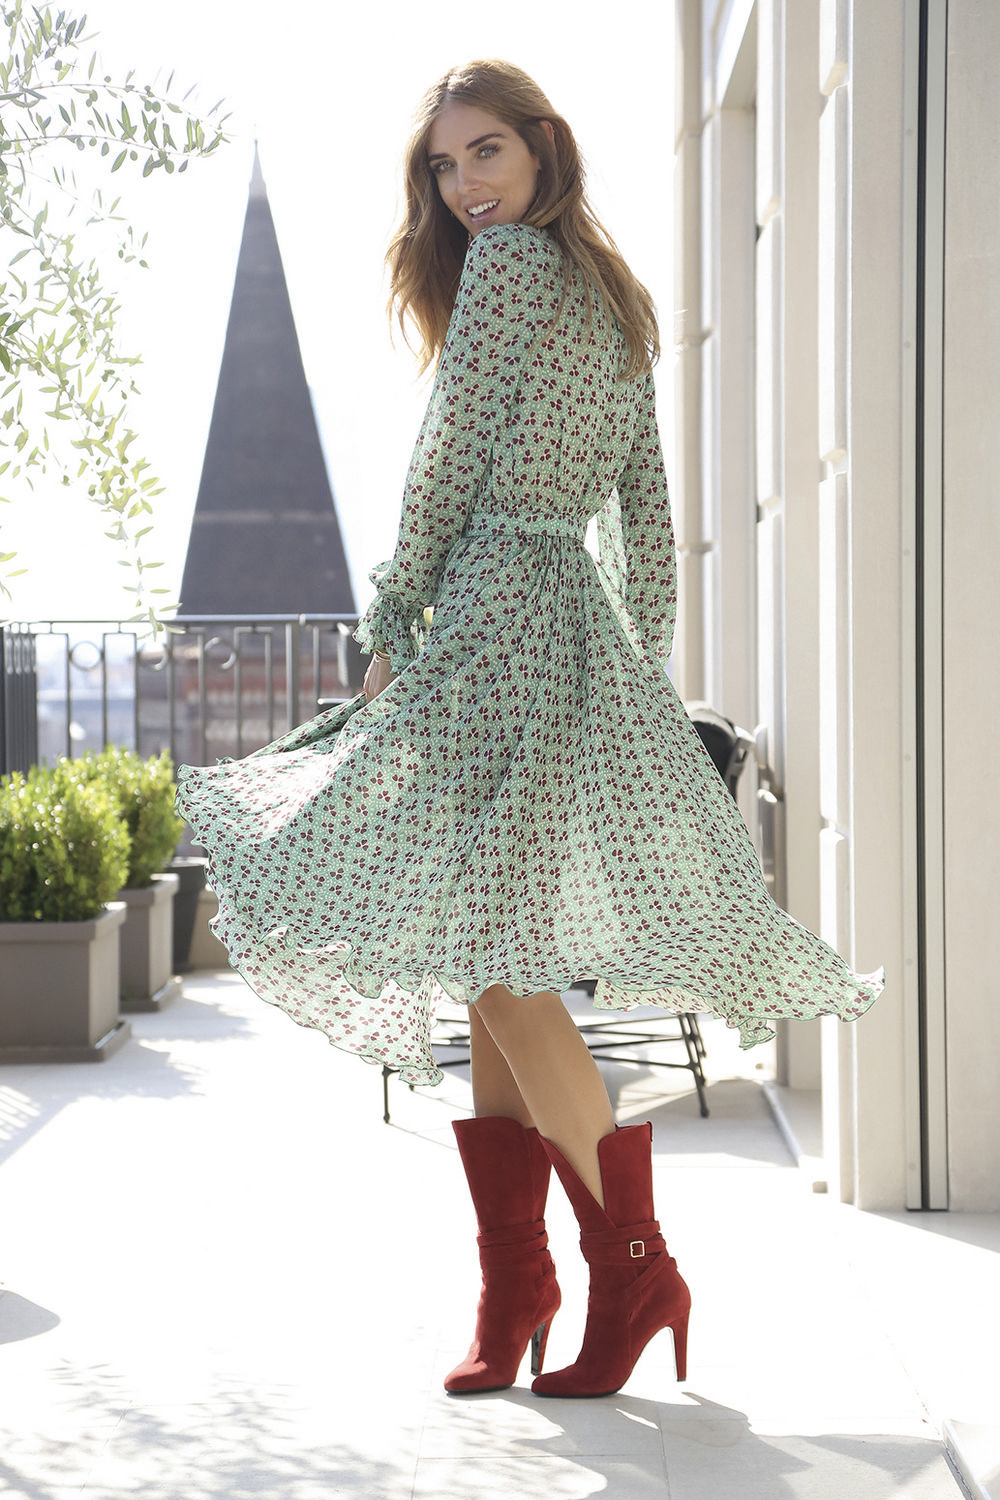 Twirl!   Street Style   Flawless in Flowing Patterned Dress & Red Suede Boots   Chiara Ferragni  by Nello Esposito for Philosophy Fall 2015     { Couture /// Runway Every Day 2 #twirl